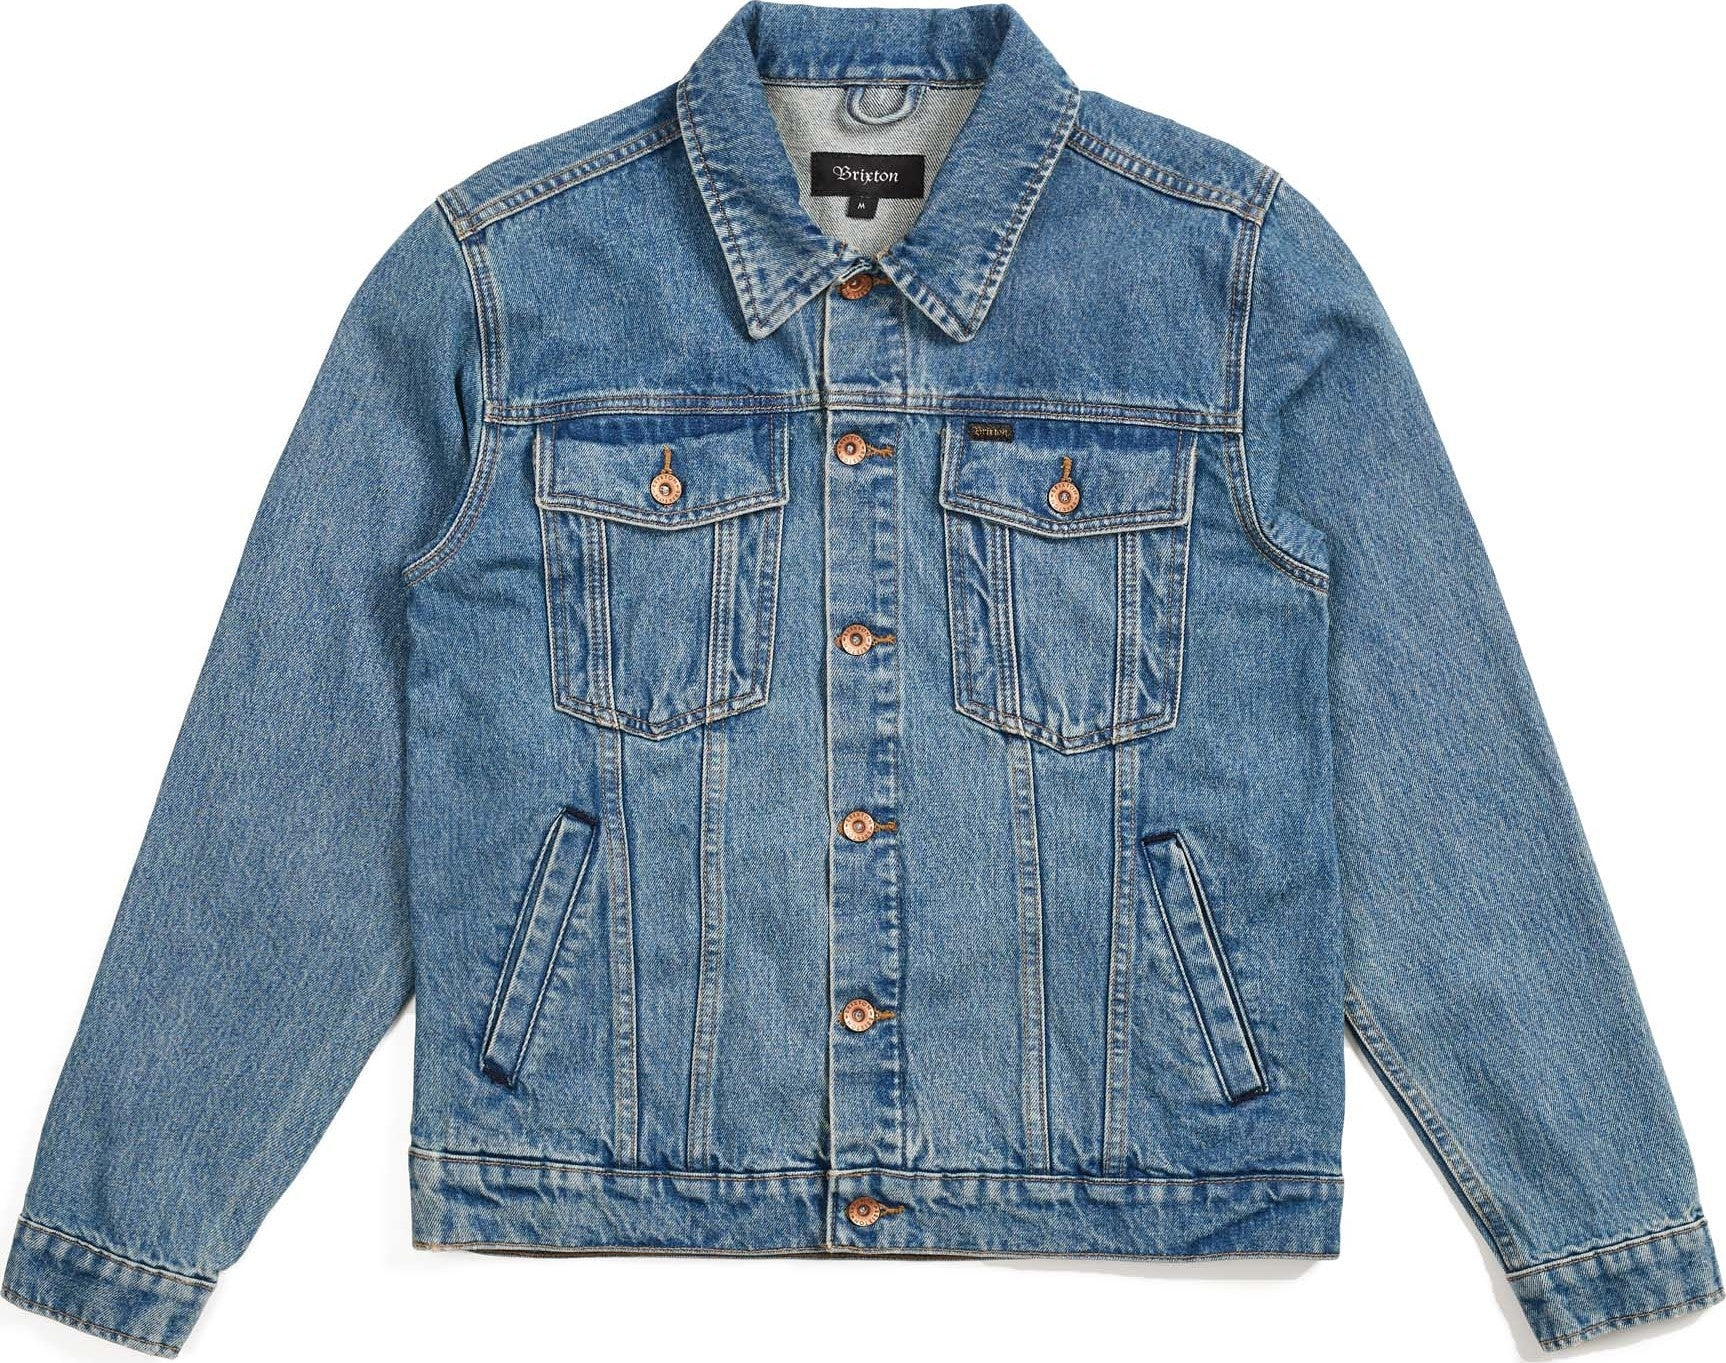 New High Quality Materials Strict Le Top Range Rider Fx Suede Cowboy Jacket Toddler